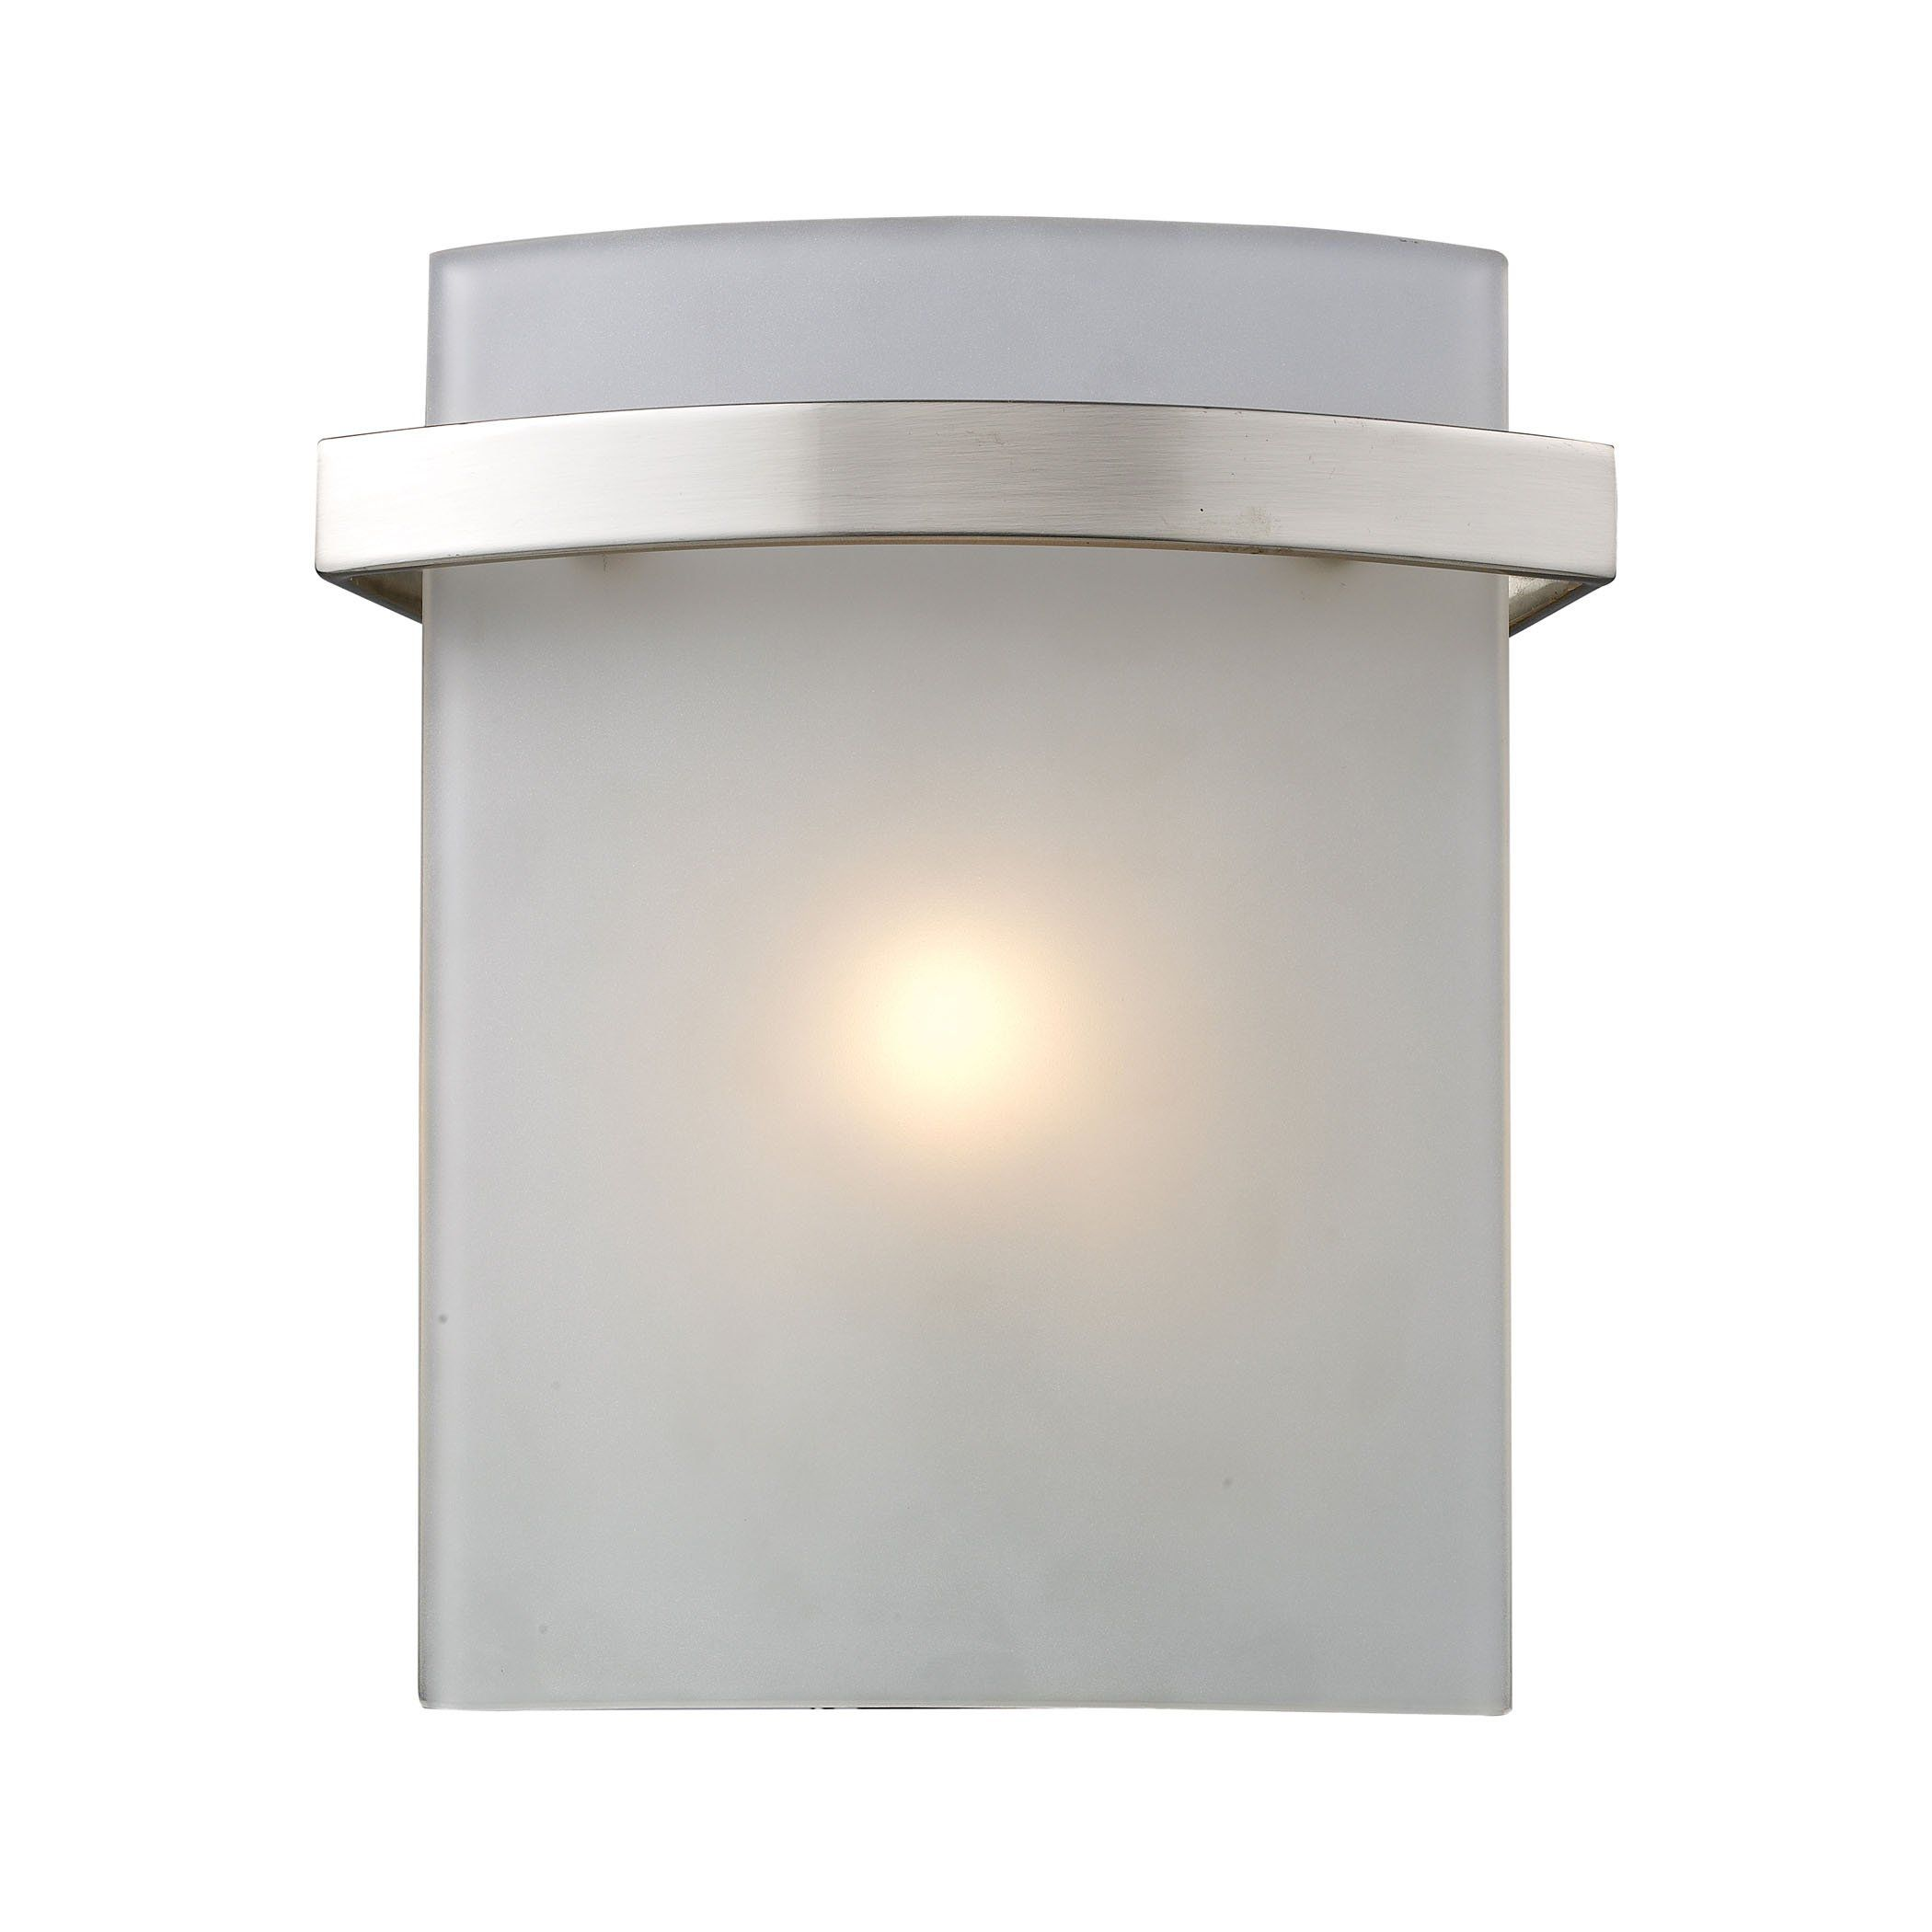 Briston 1 Light Vanity In Satin Nickel And Frosted White Glass by ELK